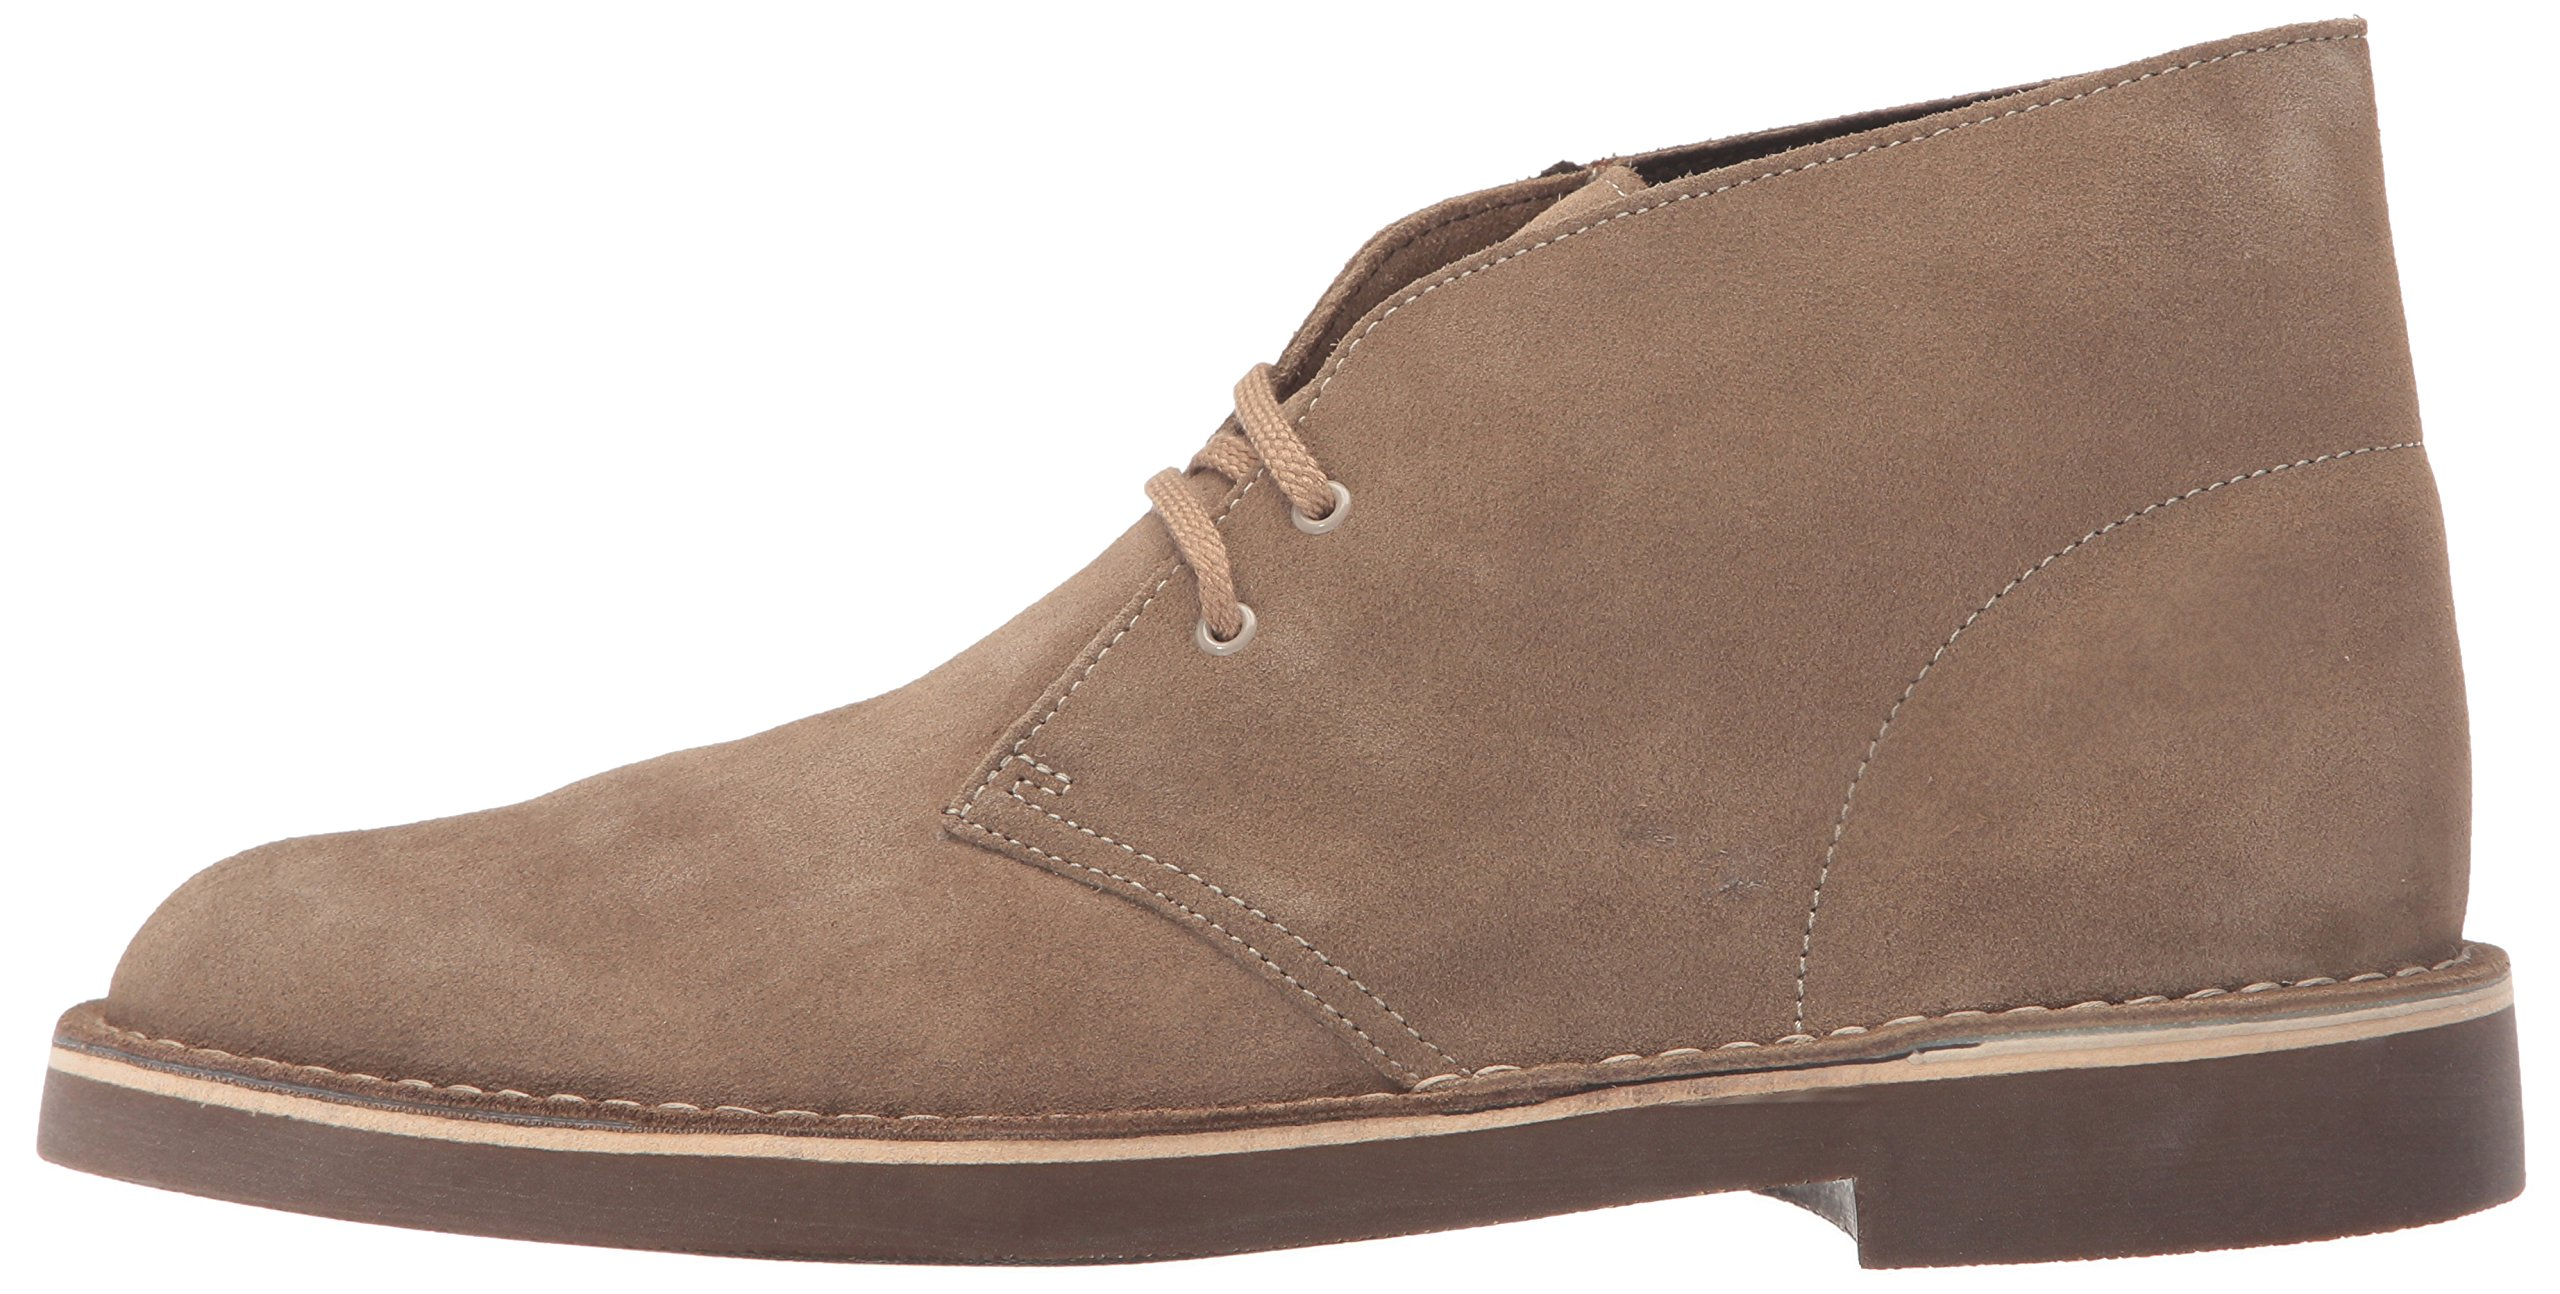 Clarks Men's Bushacre 2 Chukka Boot,Sand Sable,10 M US by CLARKS (Image #5)